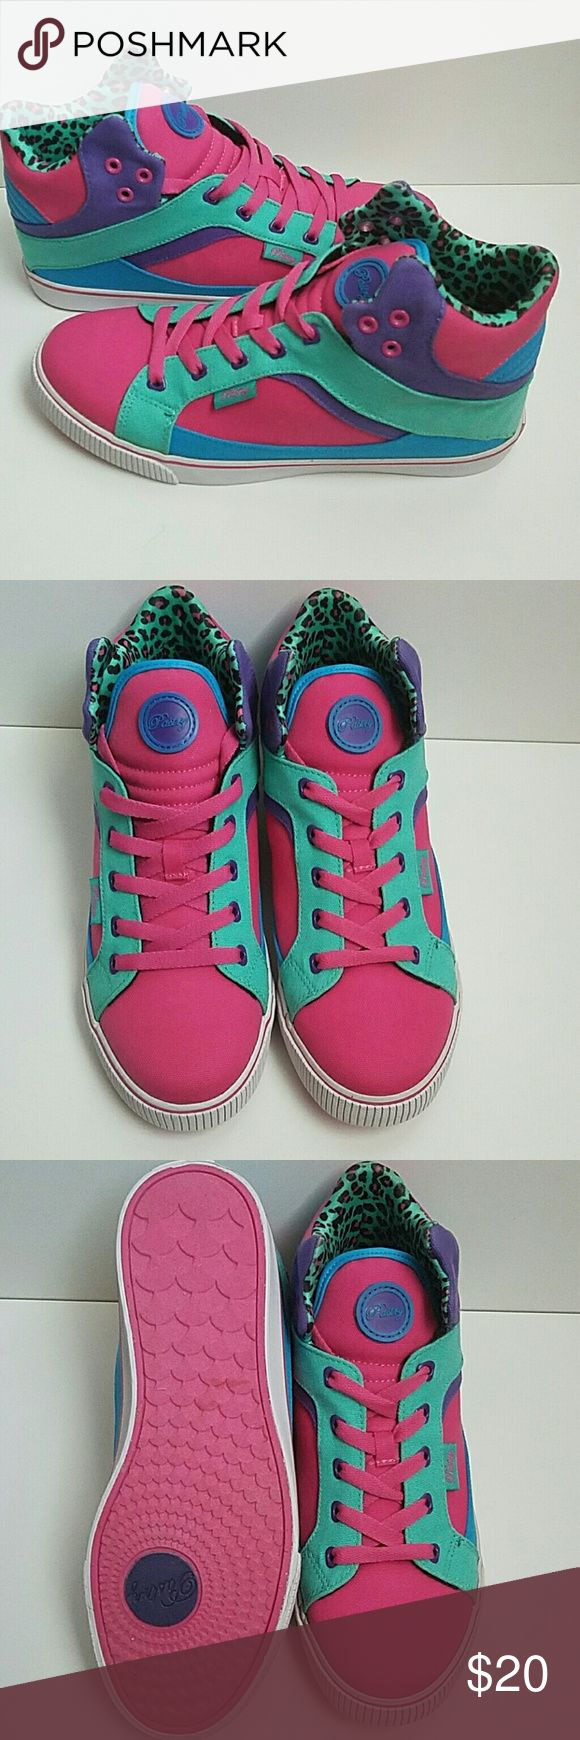 Pastry Sneakers Purple,  Pink and Aqua with animal print inside. Pastry Shoes Sneakers